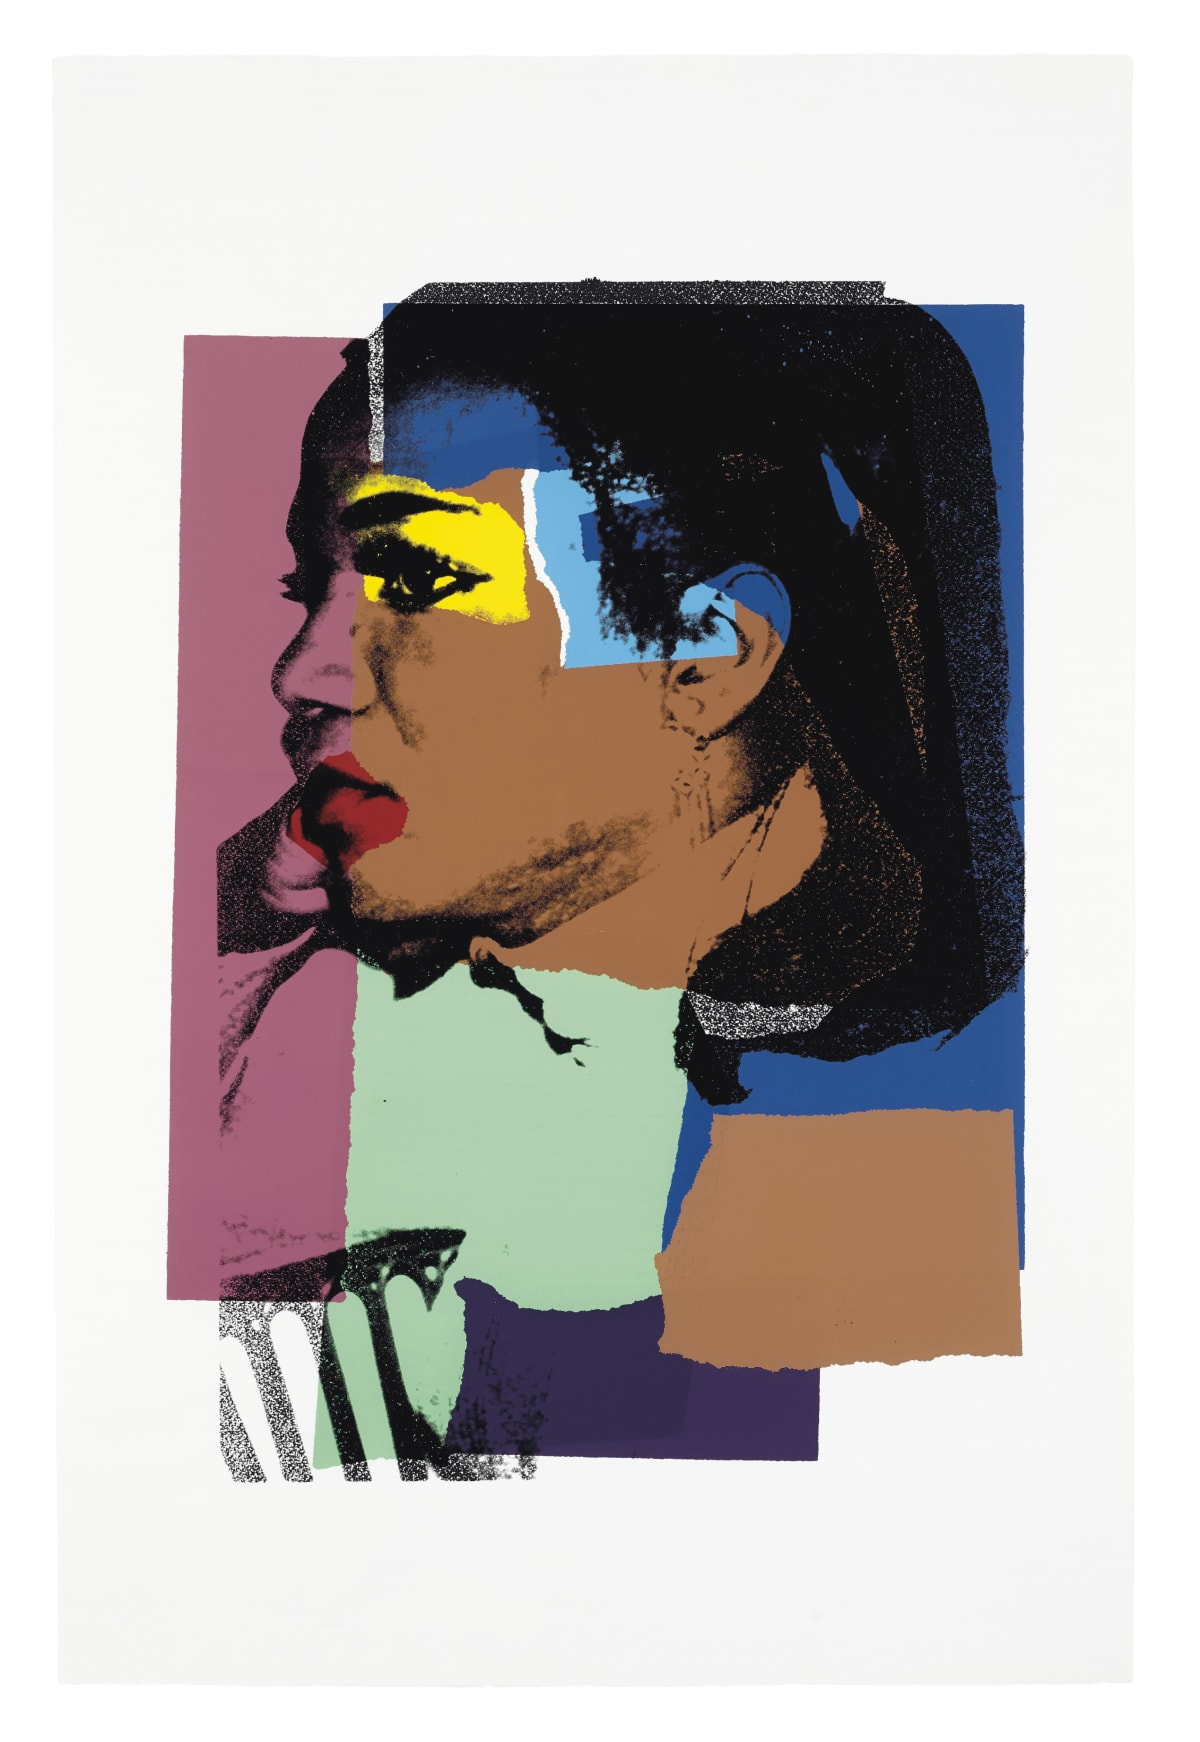 Ladies and Gentlemen, II.129, 1975, by Andy Warhol, Portfolio of Ten Screenprints from an edition of 125, at Coskun Fine Art